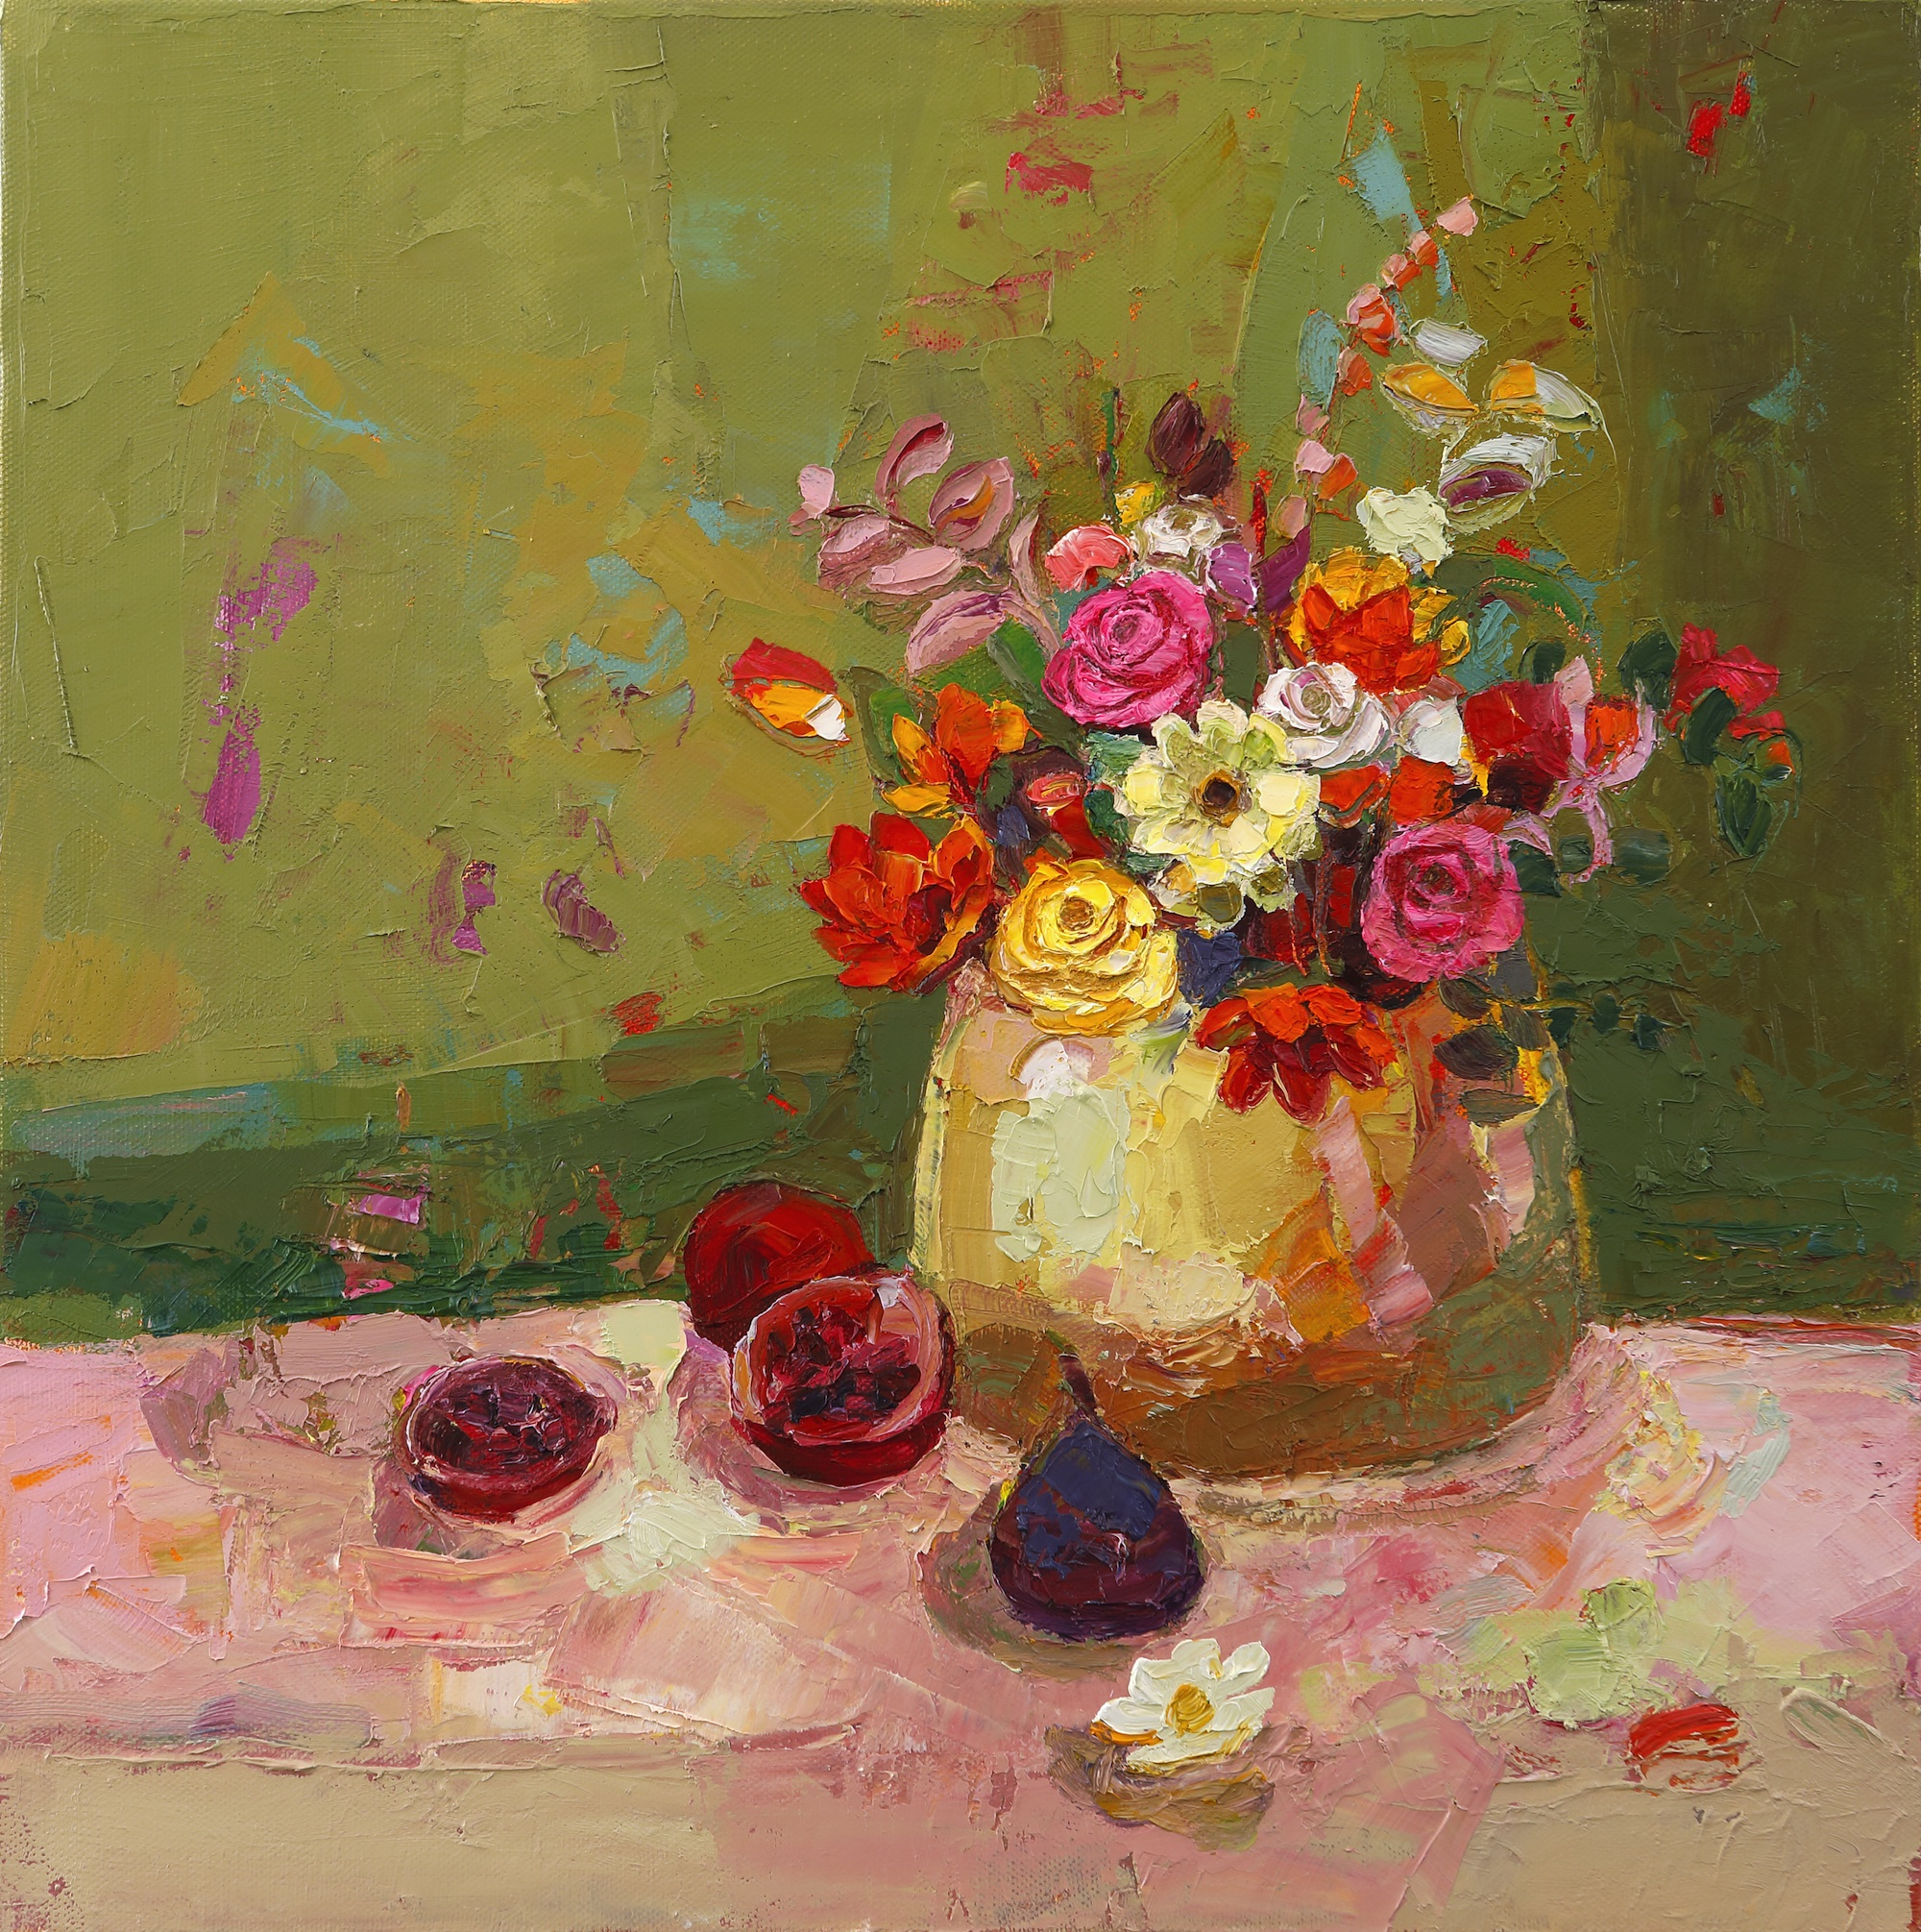 Title: Unruly Bunch Size: 16 x 16 inches Medium: Oil on Canvas SOLD